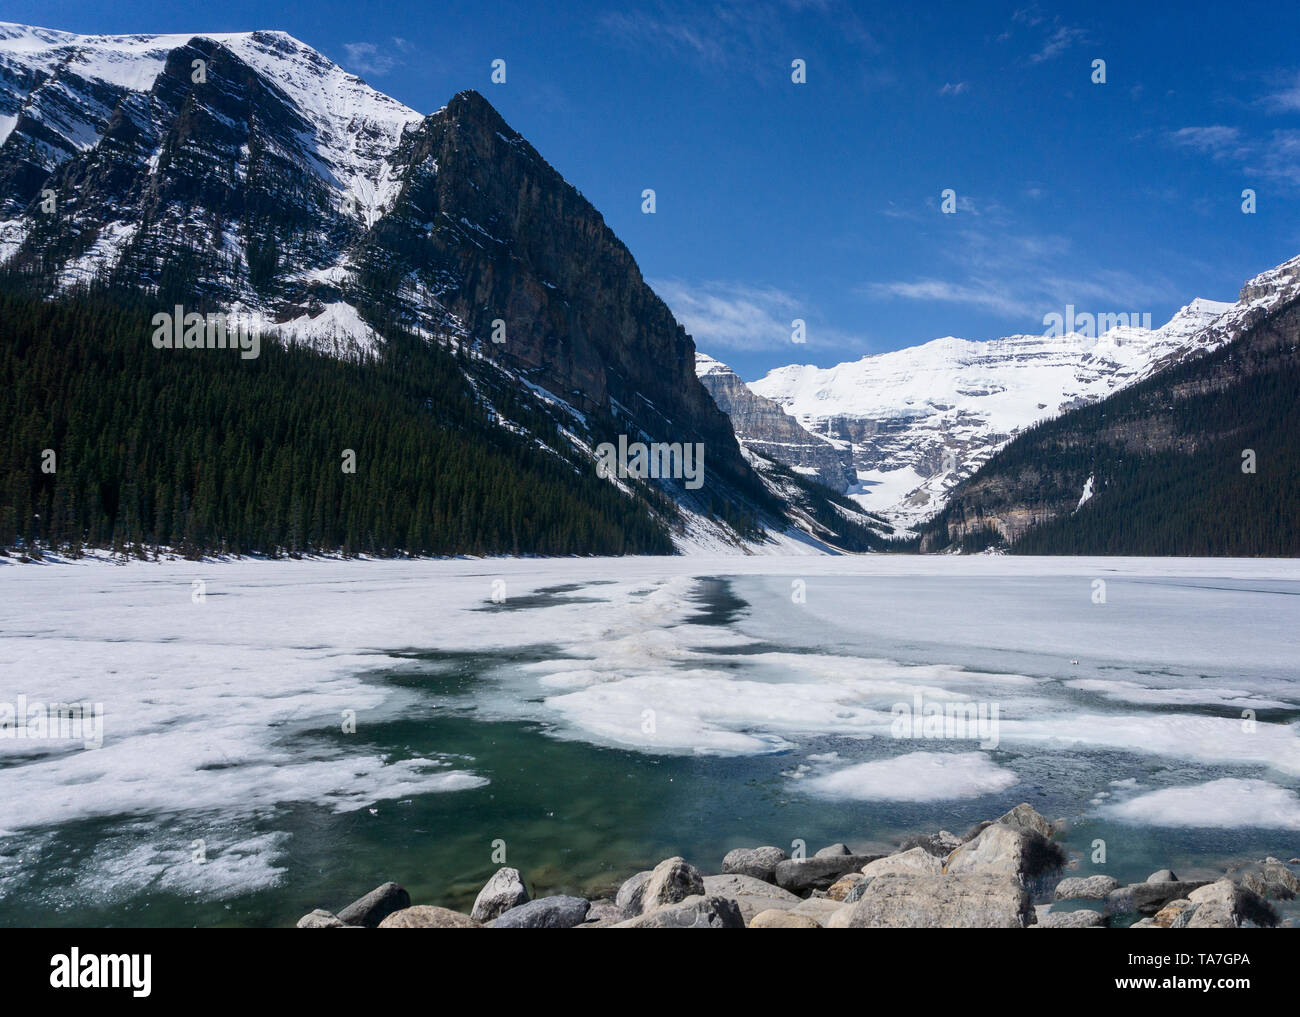 Lake Louise Alberta Canada - Stock Image